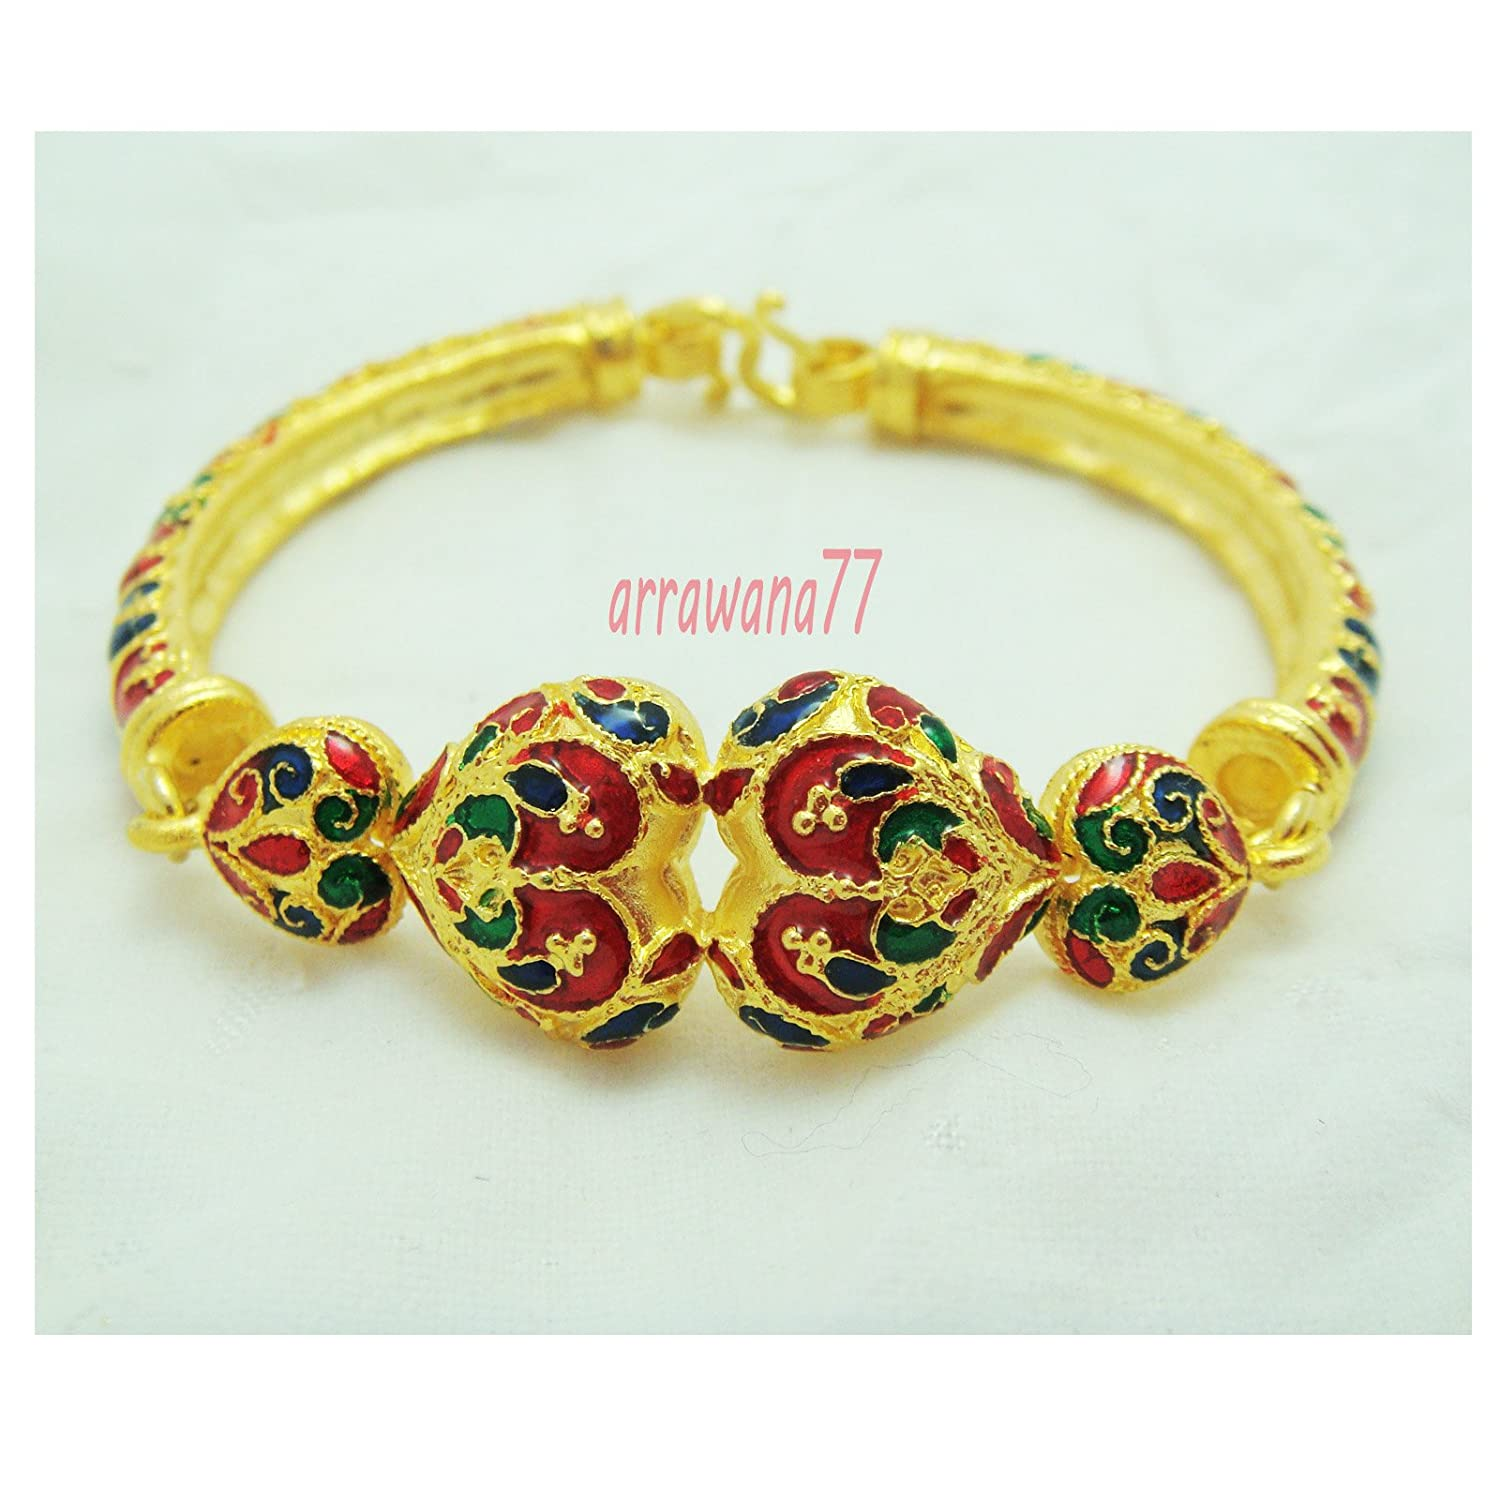 pin has bangles beautiful this sunflowers cream enamel created bangle been